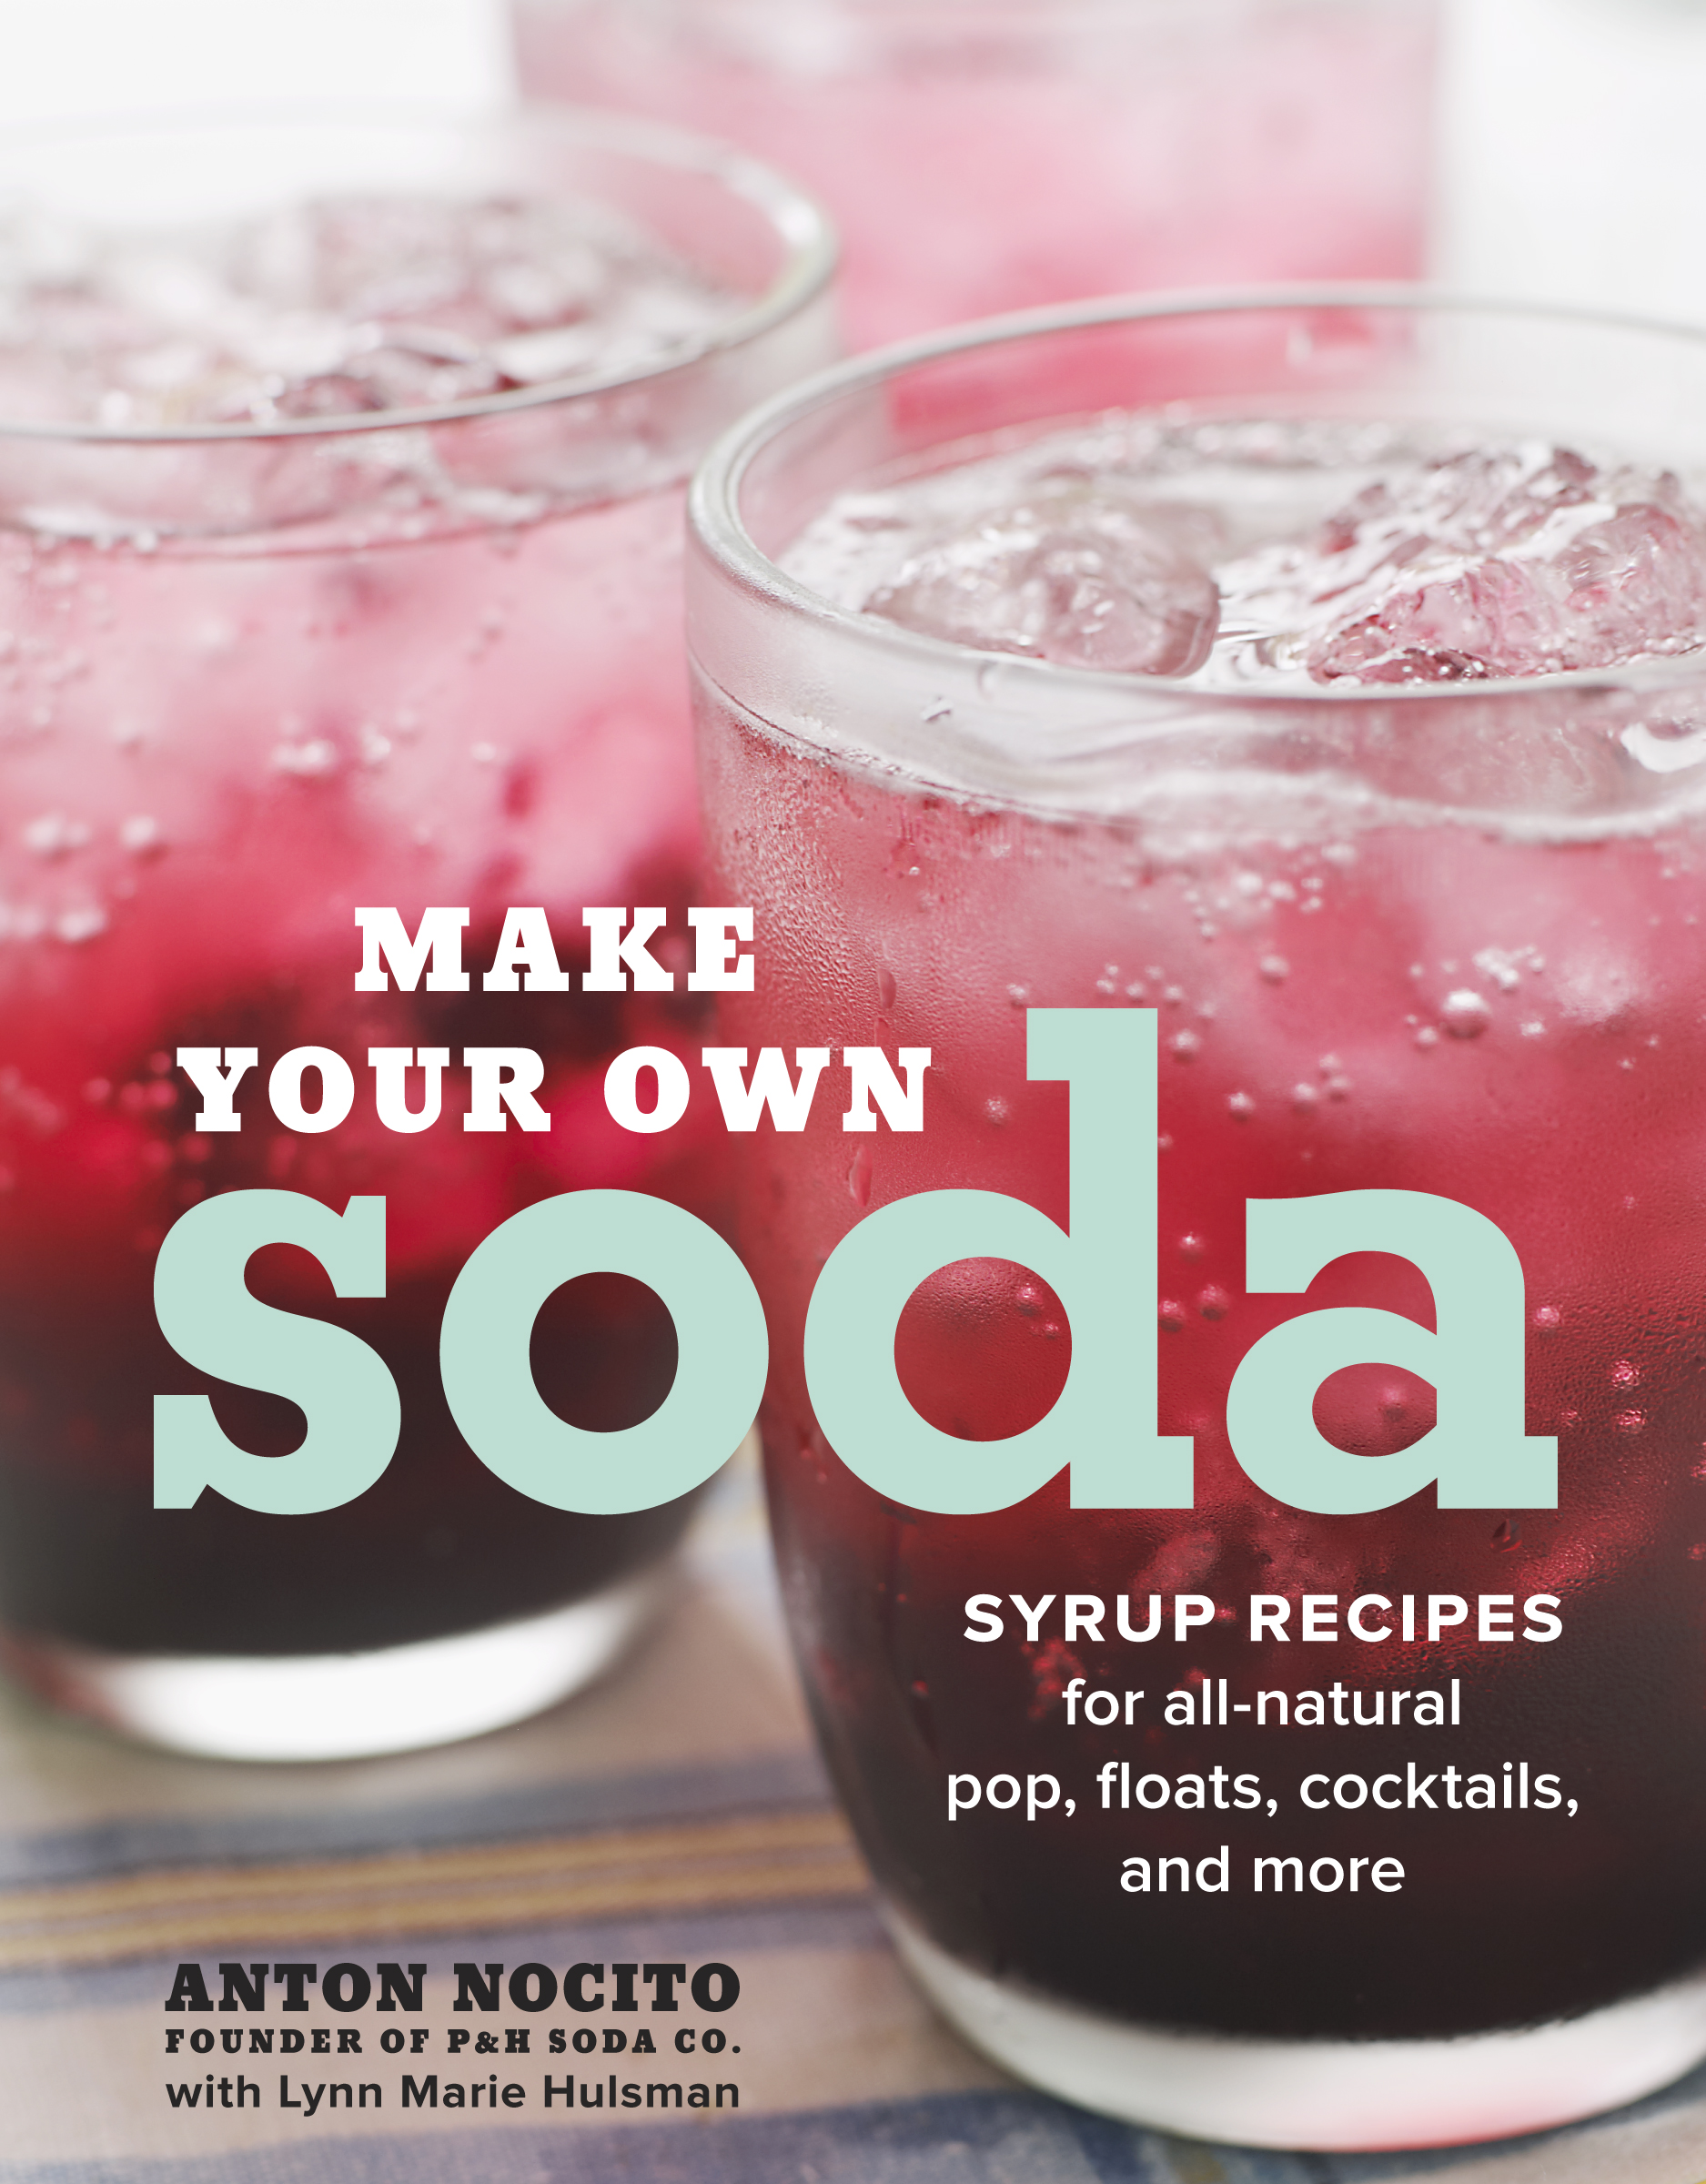 Book Launch: Make Your Own Soda by Anton Nocito